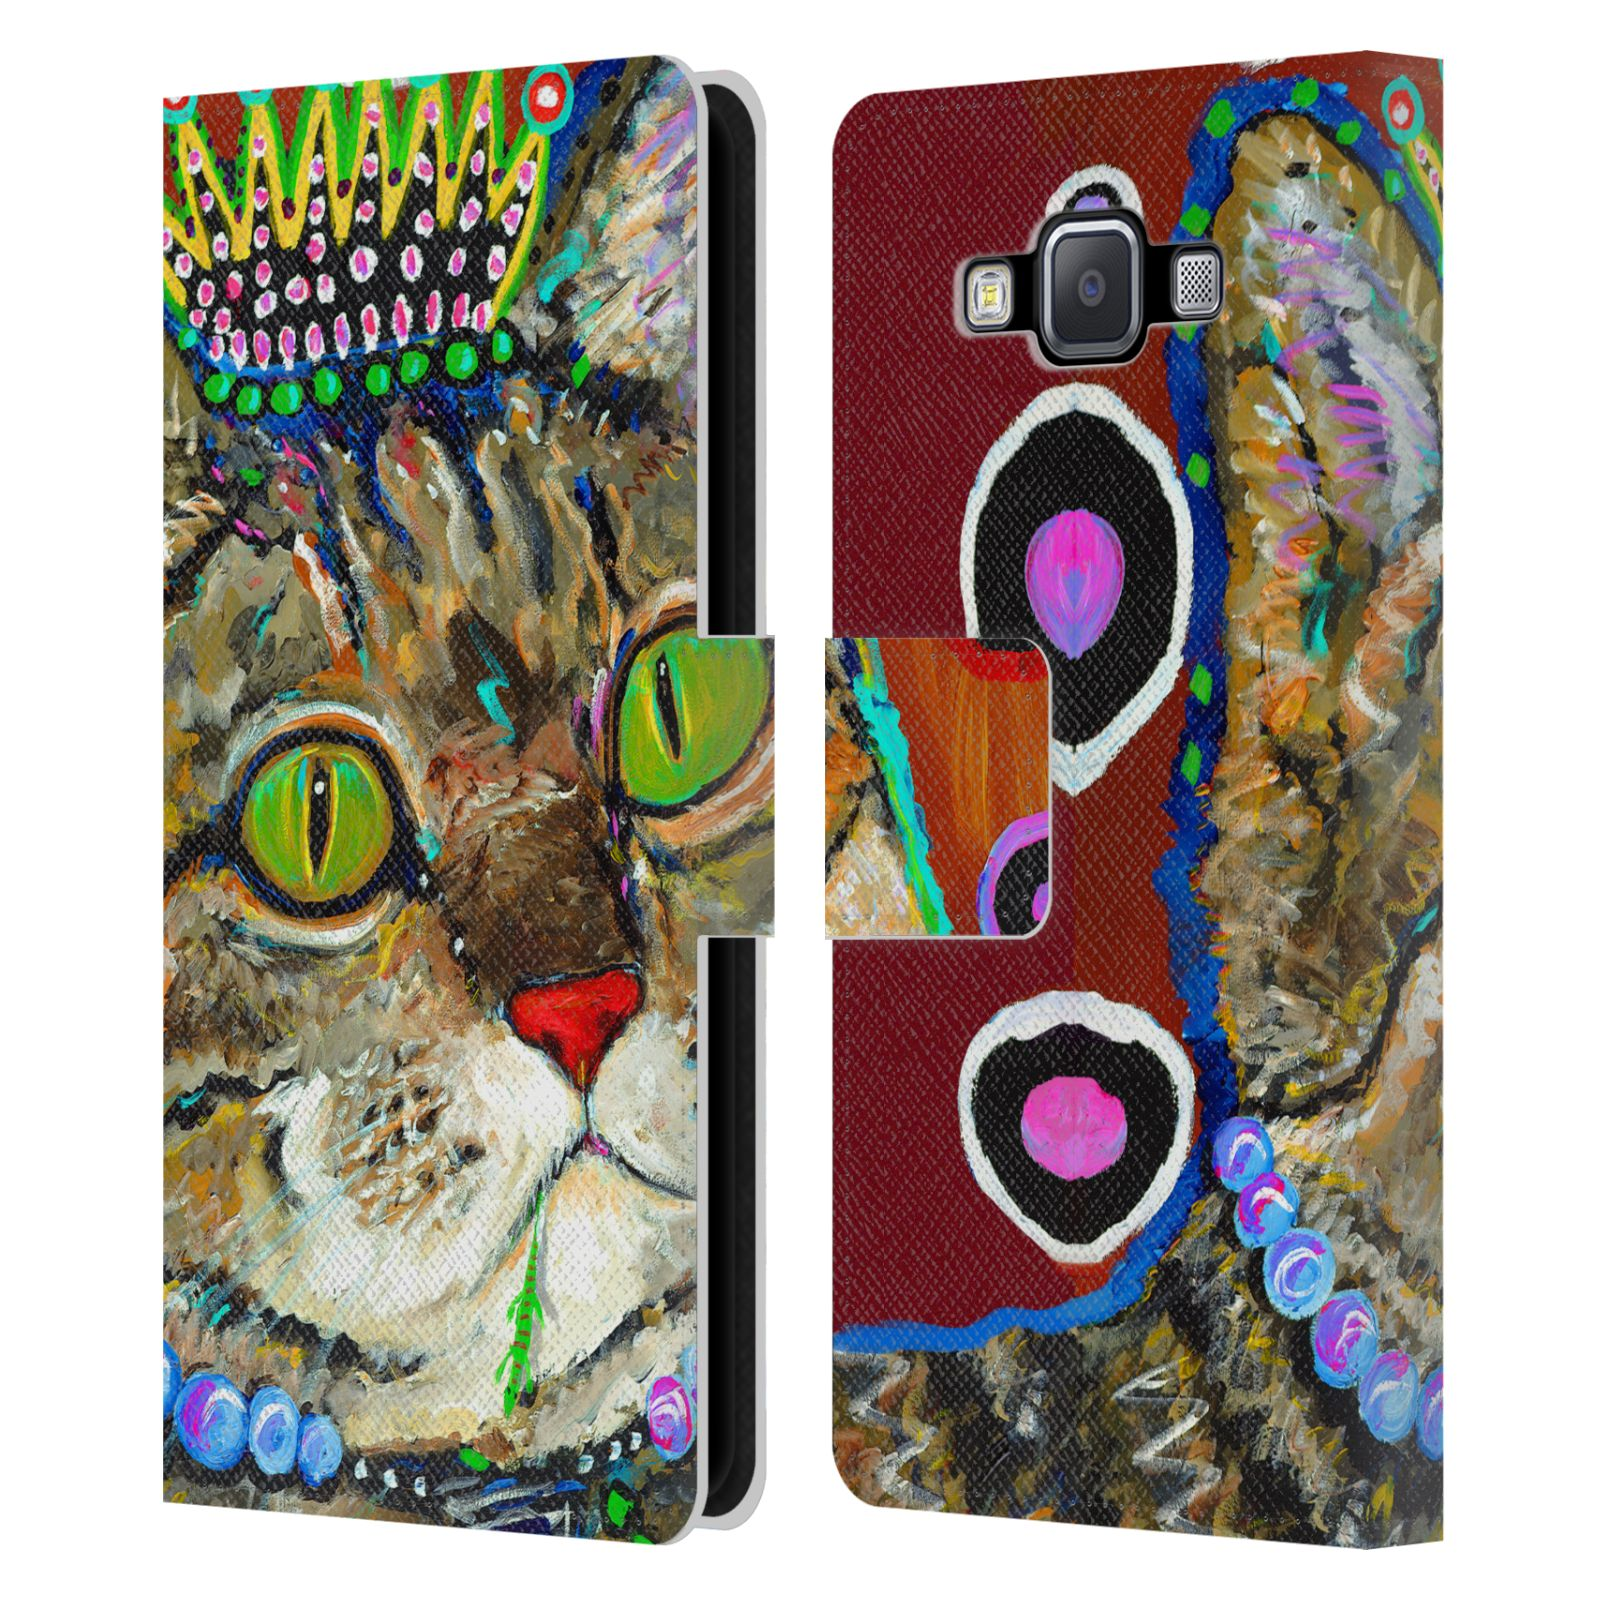 OFFICIAL-MAD-DOG-ART-GALLERY-CATS-LEATHER-BOOK-WALLET-CASE-FOR-SAMSUNG-PHONES-2